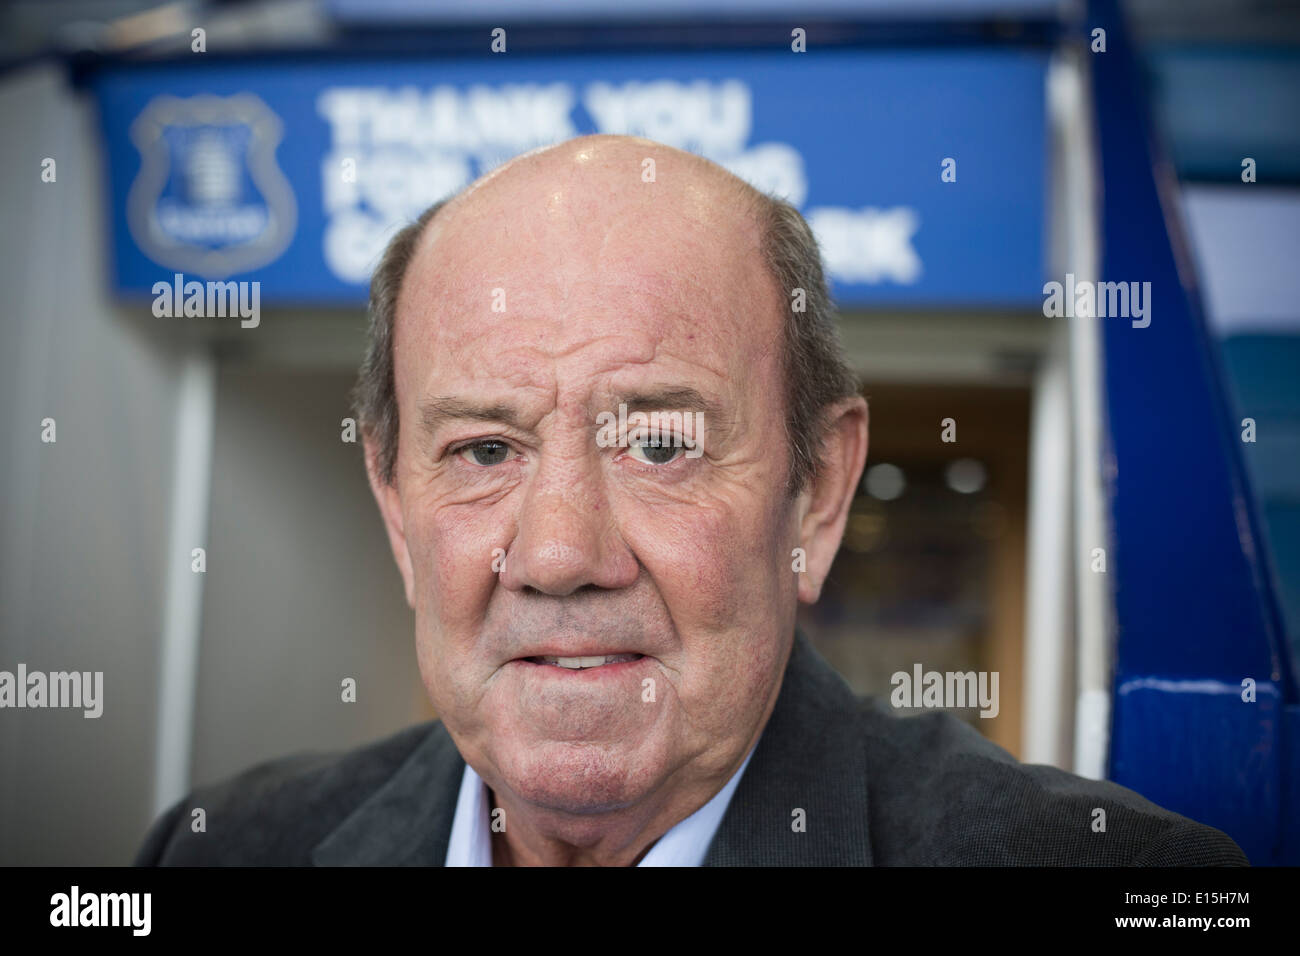 Former Everton FC player and manager Howard Kendall, pictured at the club's Goodison Park stadium in Liverpool. - Stock Image